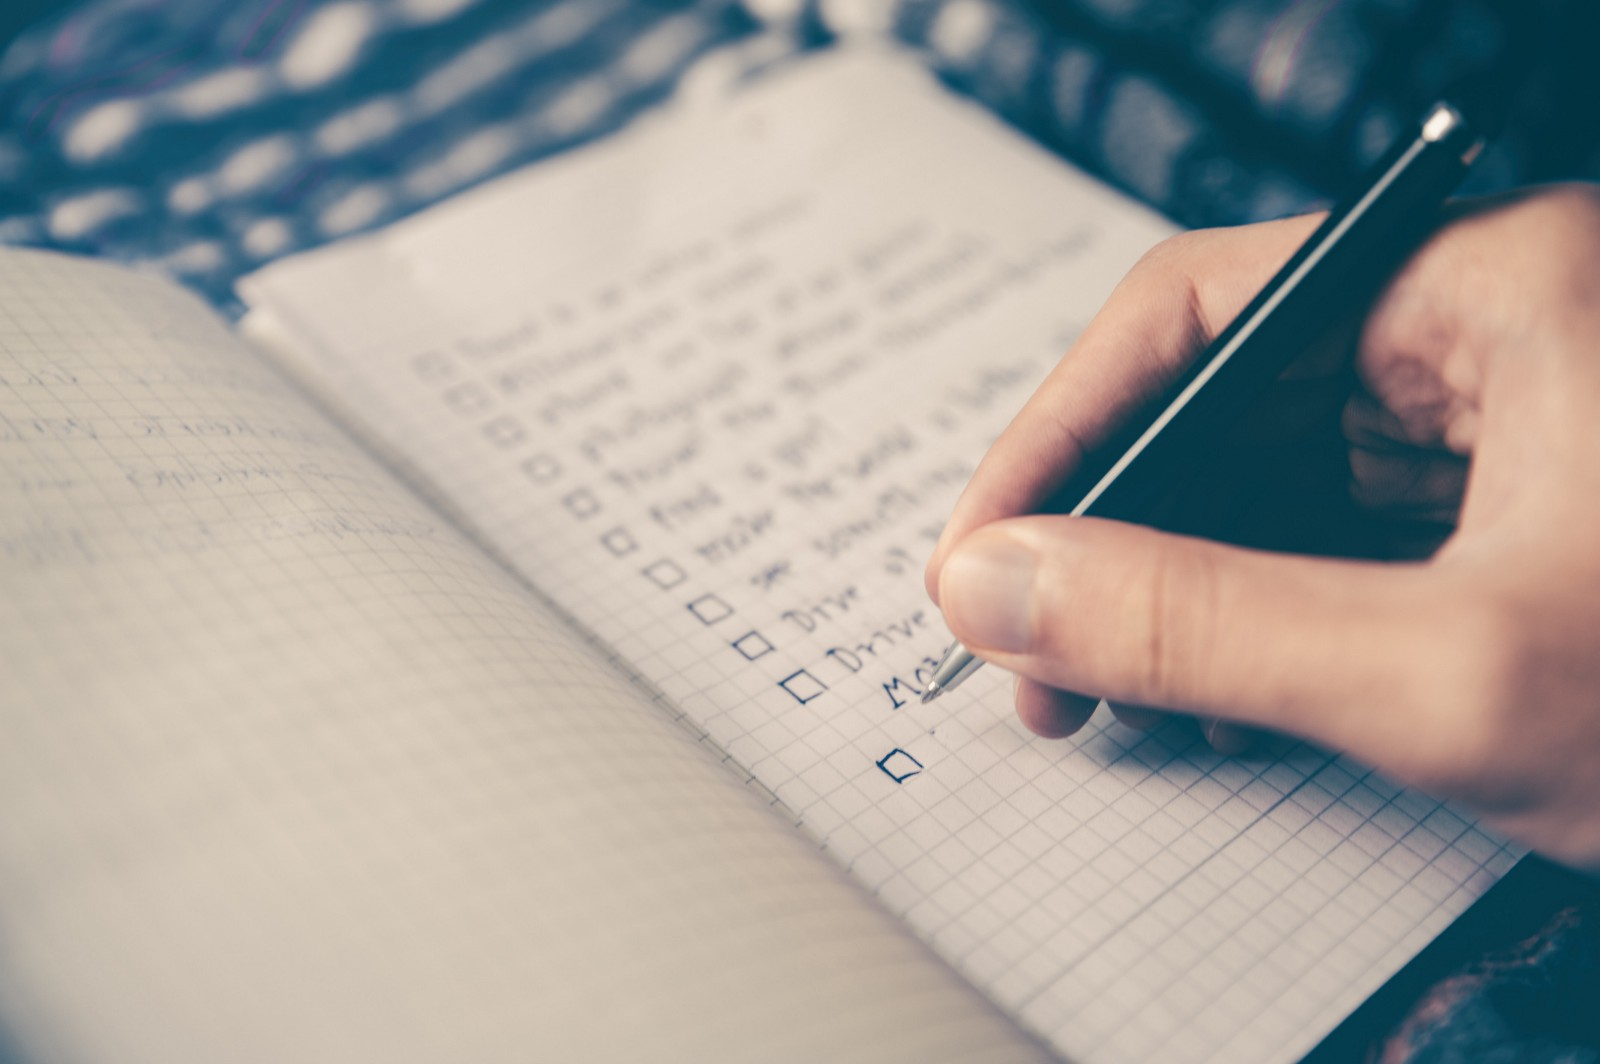 Look back on your to-do list and celebrate each accomplishment and milestones you've made.